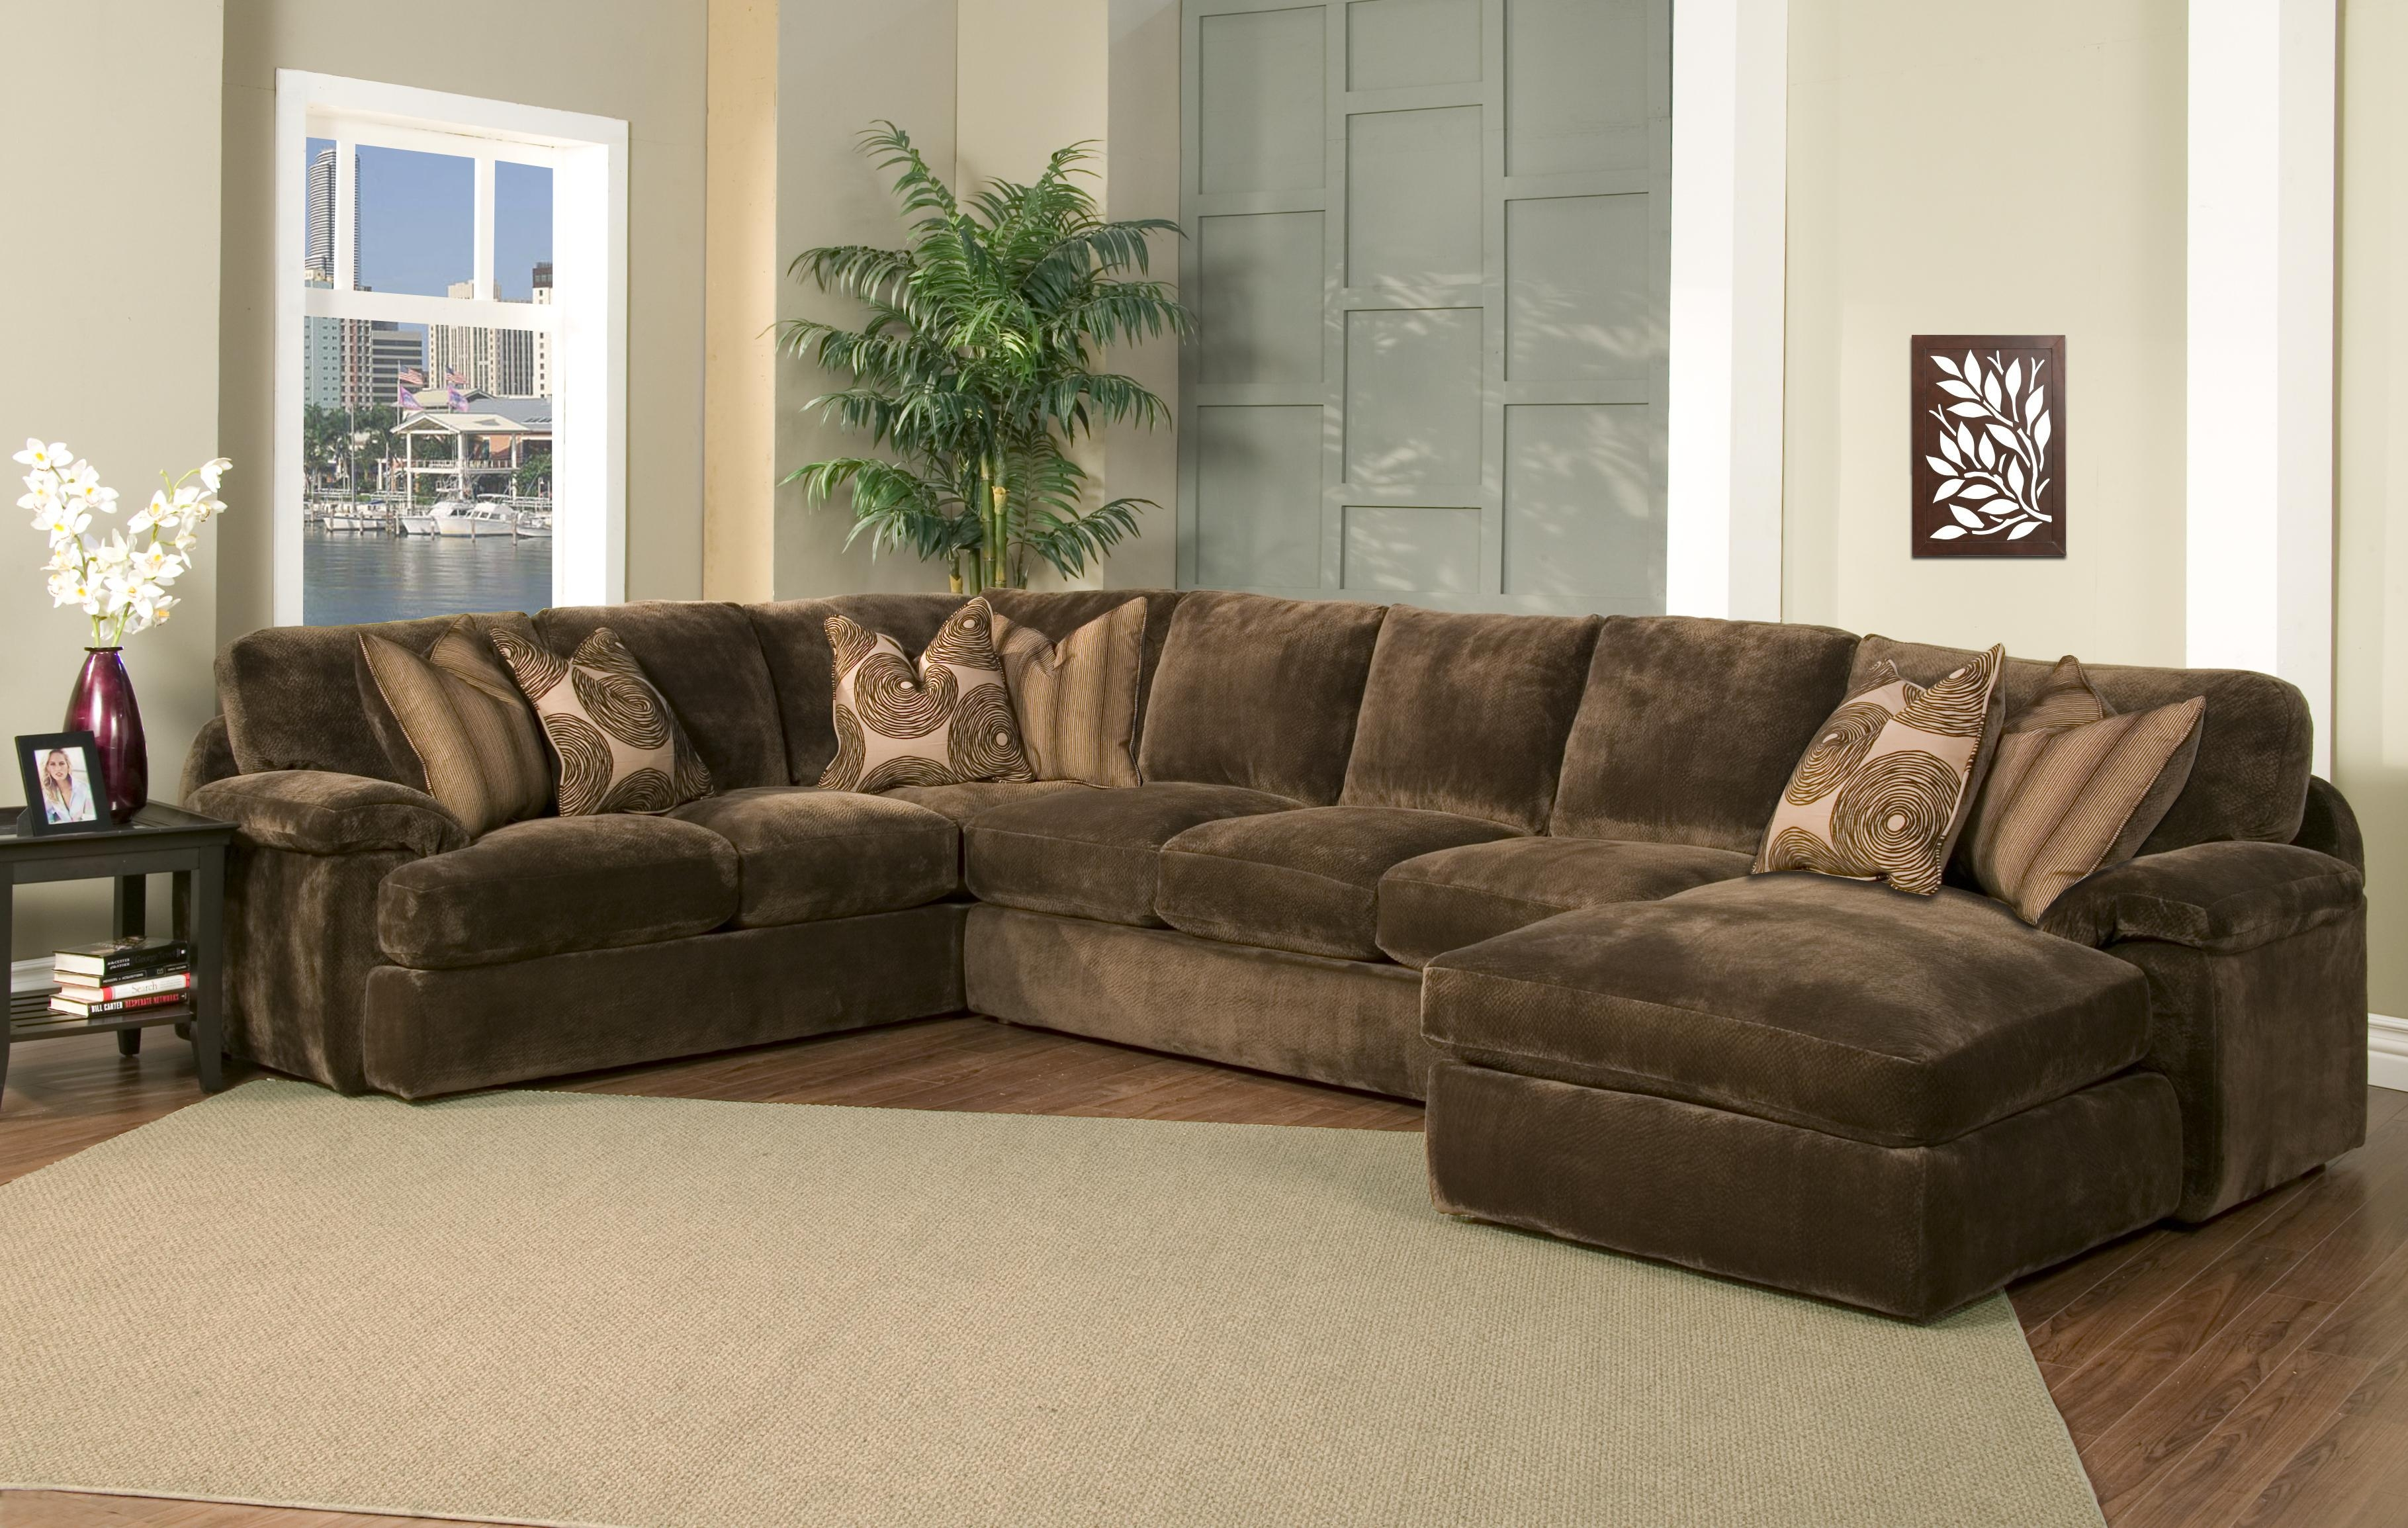 Robert Michaels Sofas And Sectionals Inside Chocolate Brown Sectional Sofa (View 8 of 15)